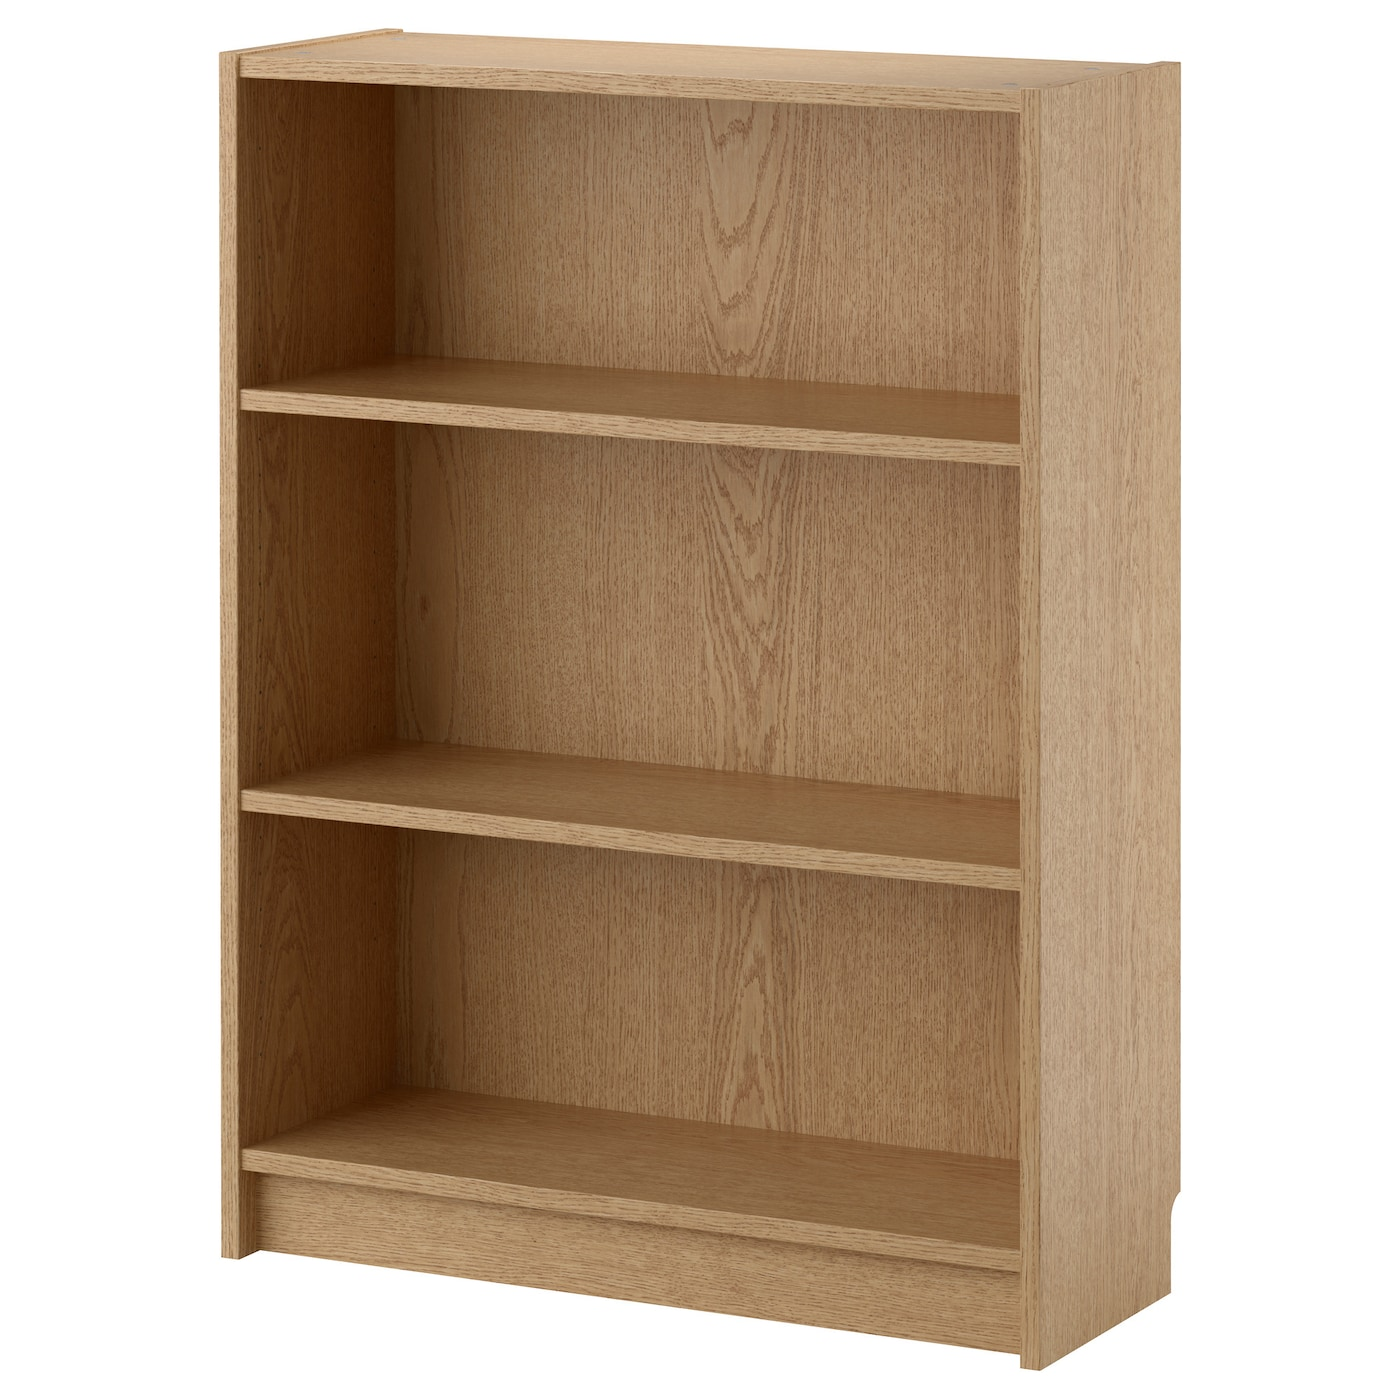 ikea billy bookcase adjustable shelves adapt space between shelves according to your needs